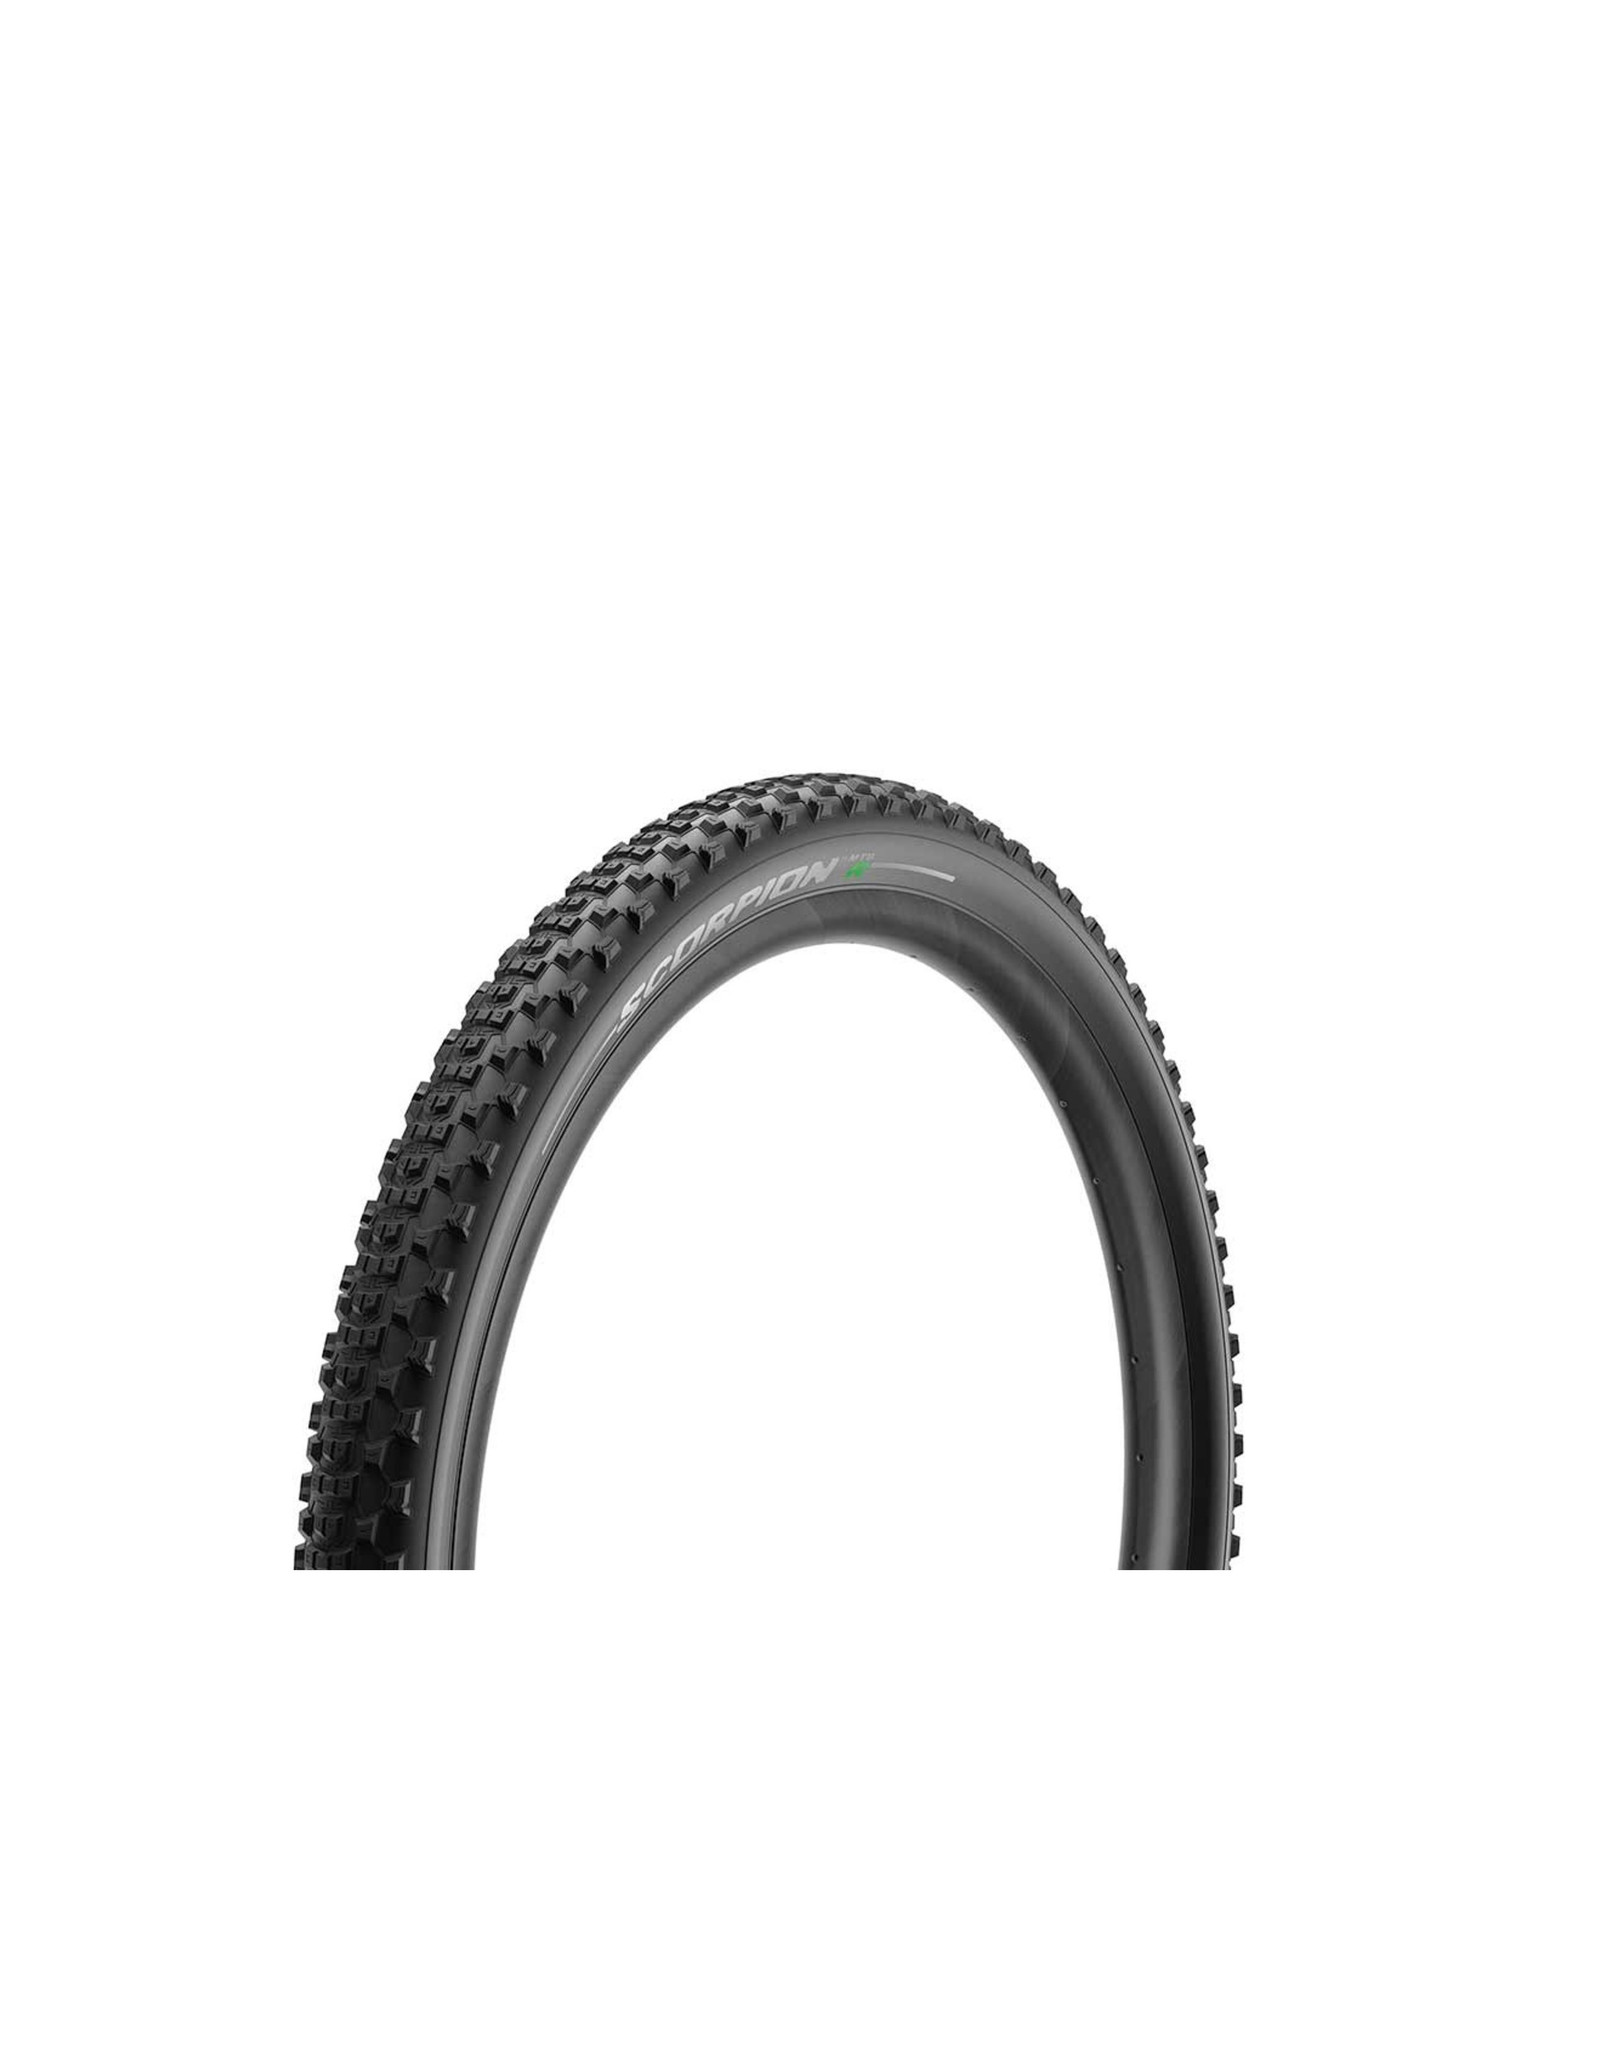 Pirelli, Scorpion MTB R, Tire, 29''x2.40, Folding, Tubeless Ready, Smartgrip, 60TPI, Black